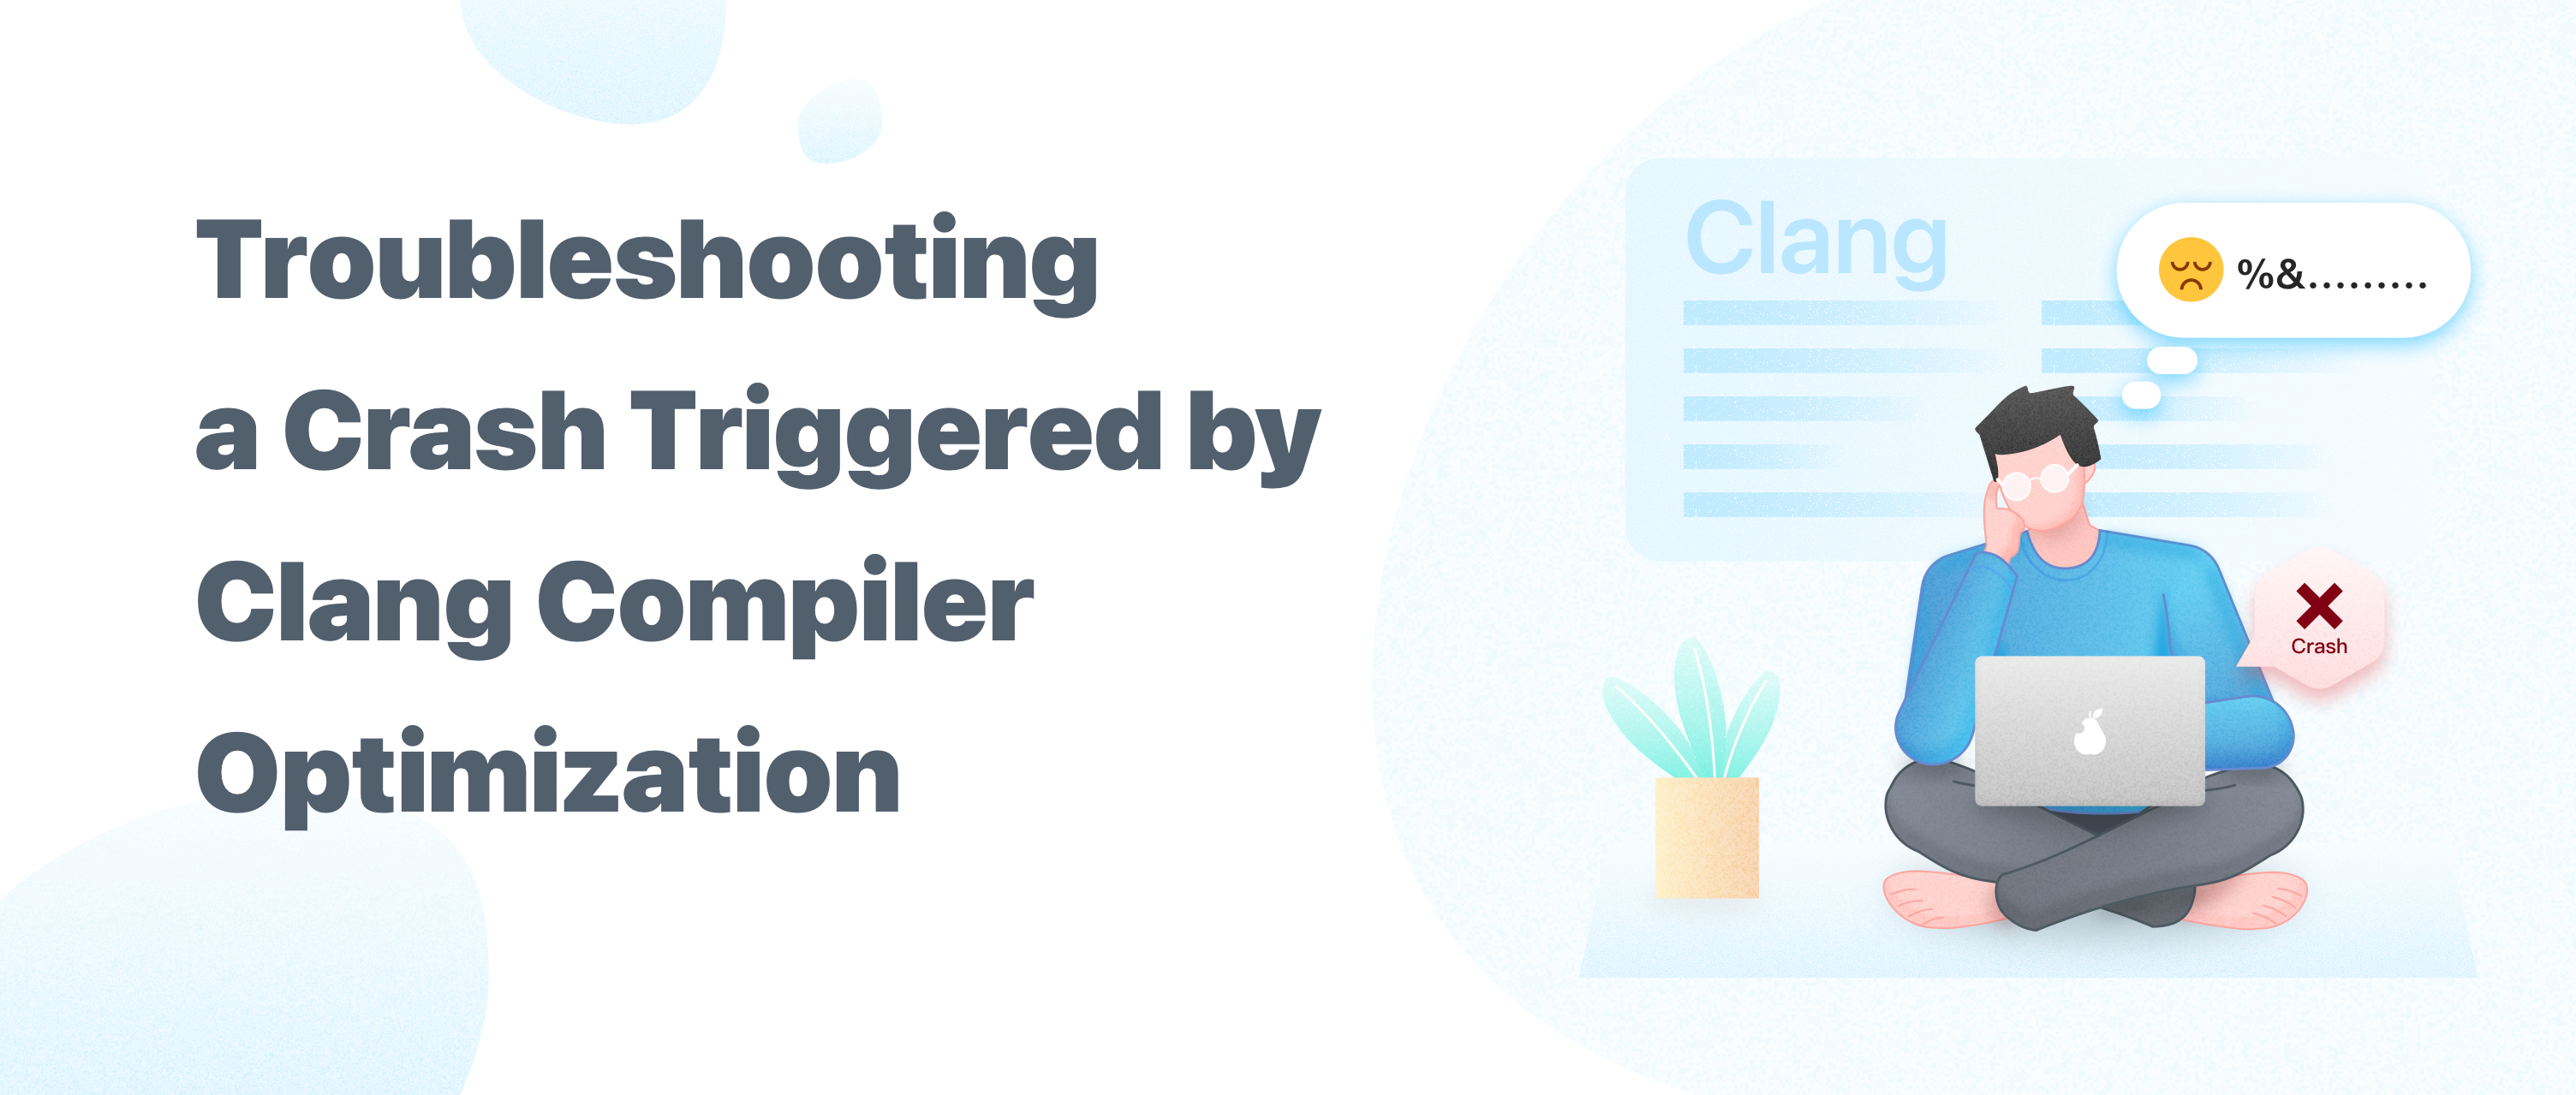 Troubleshooting a Crash Triggered by Clang Compiler Optimization